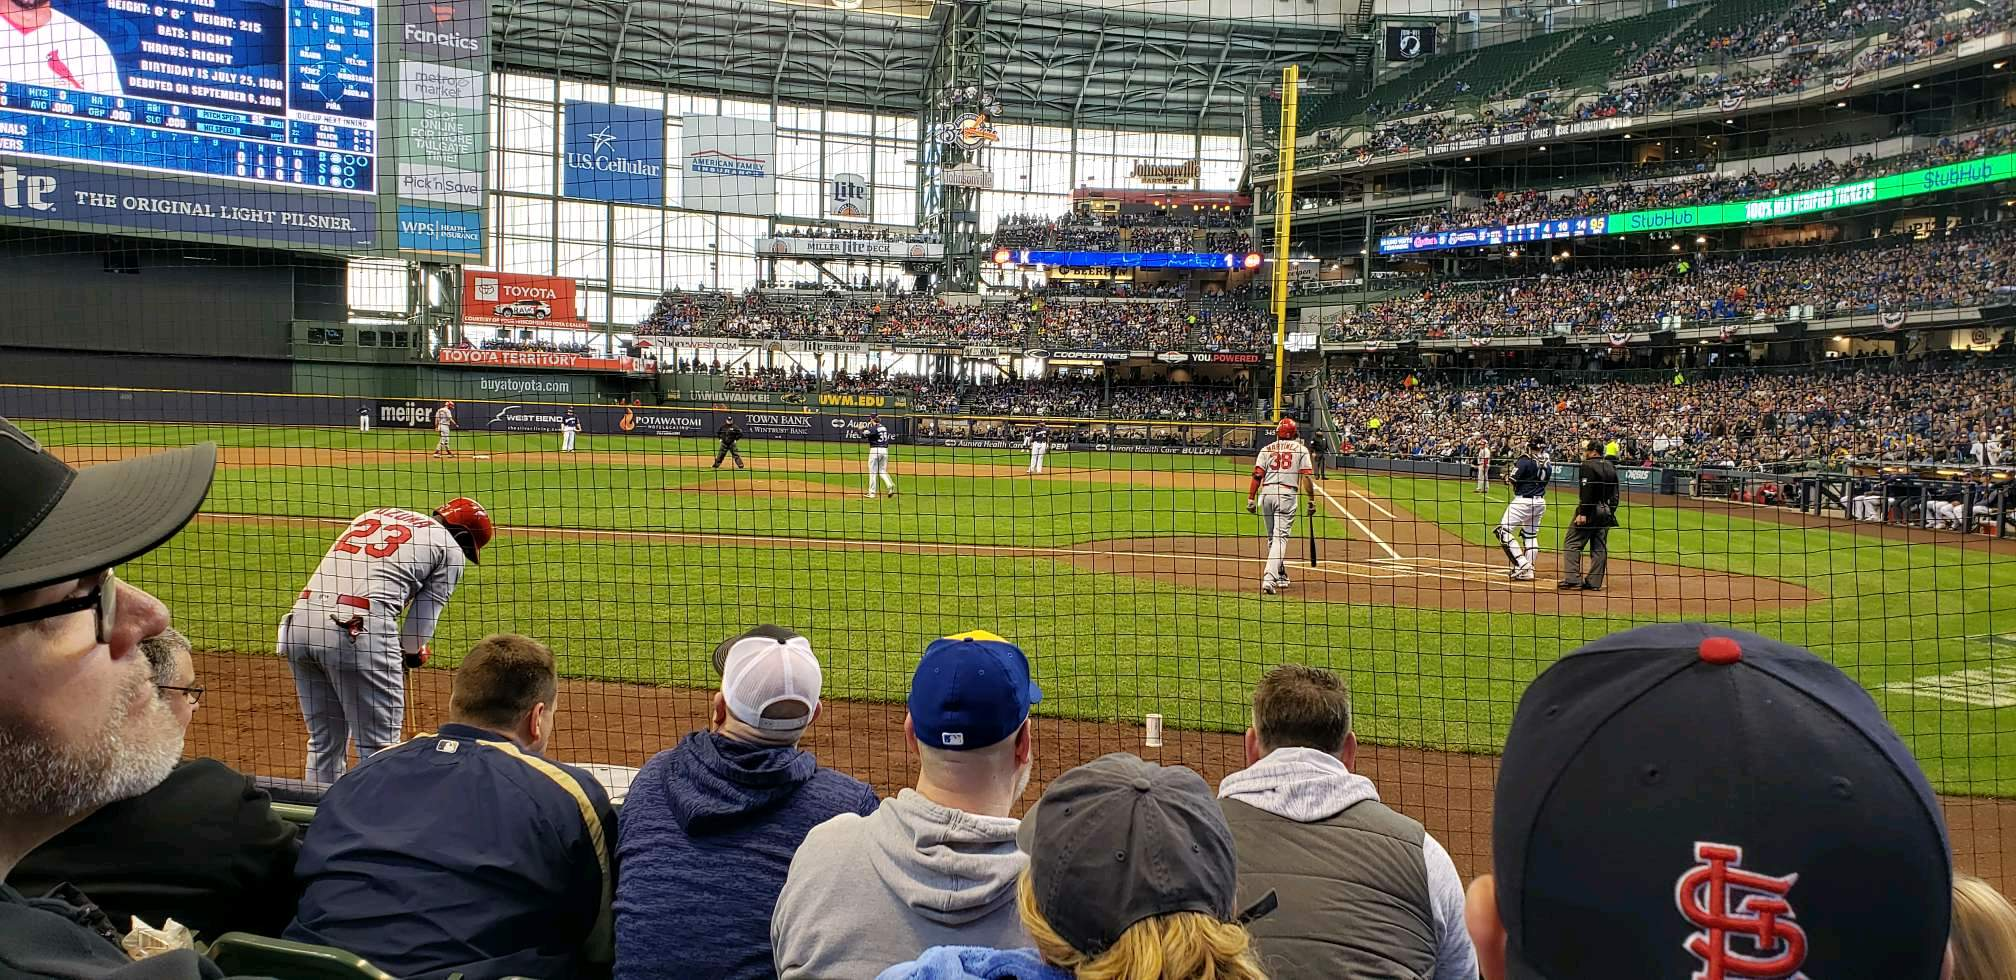 Miller Park Section 120 Row 4 Seat 5